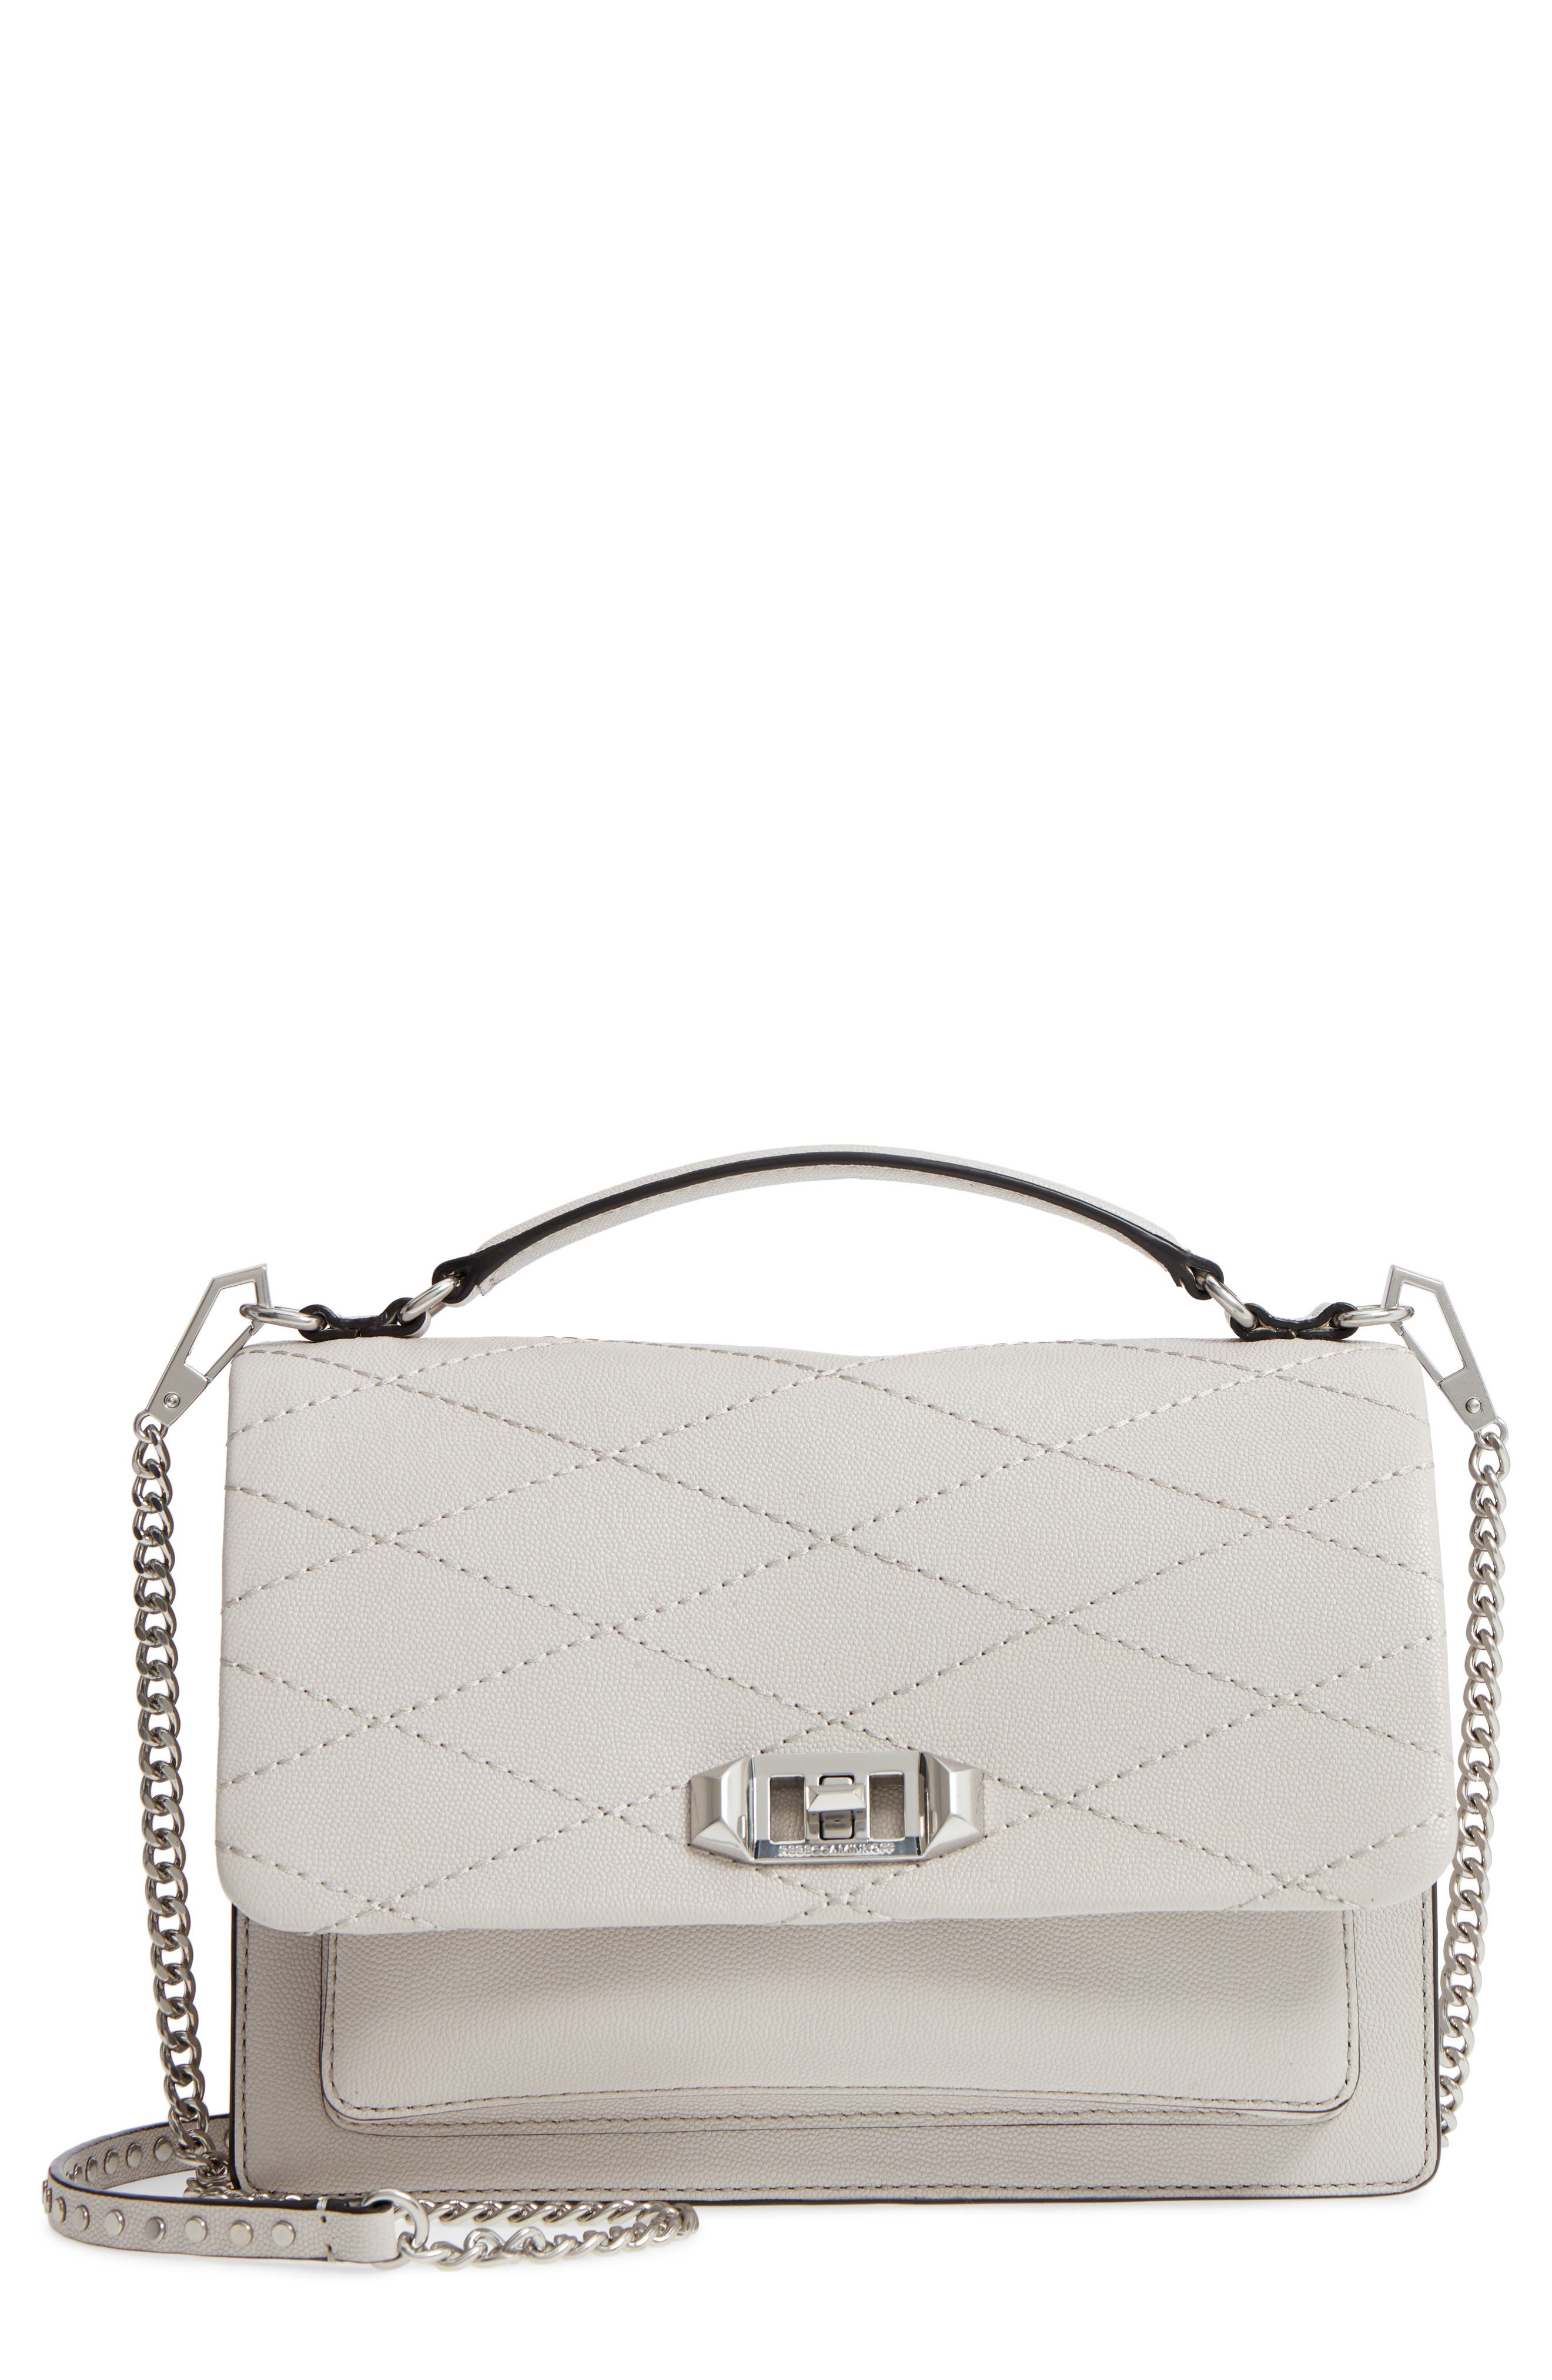 Medium Je T'aime Convertible Leather Crossbody Bag,                         Main,                         color, Putty